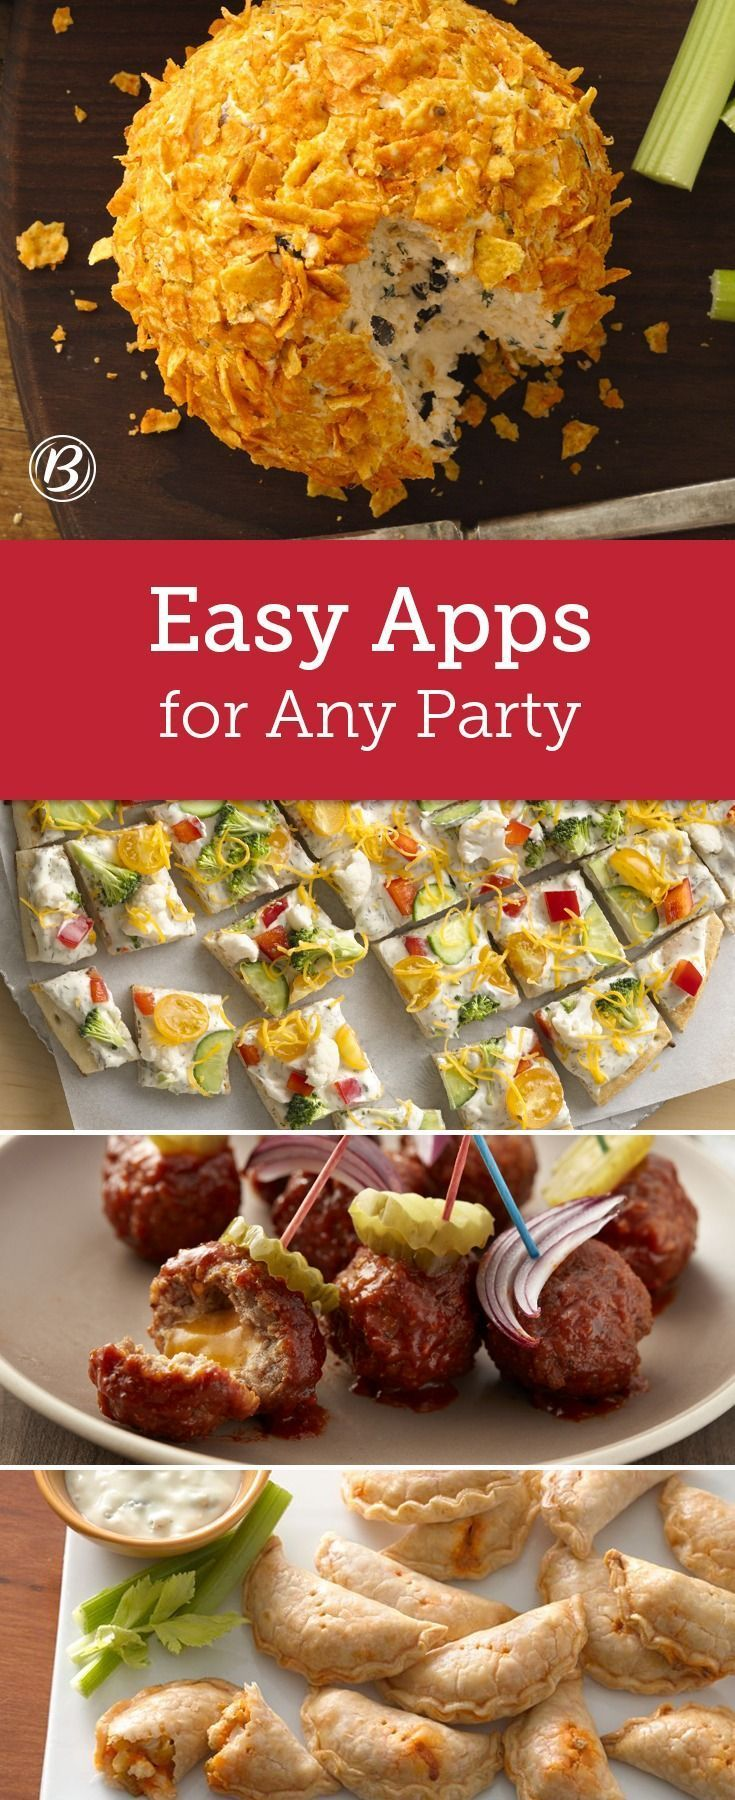 12 Easy Apps (So You Can Enjoy Your Own Party) | Appetizers, Yummy appetizers, Food drink